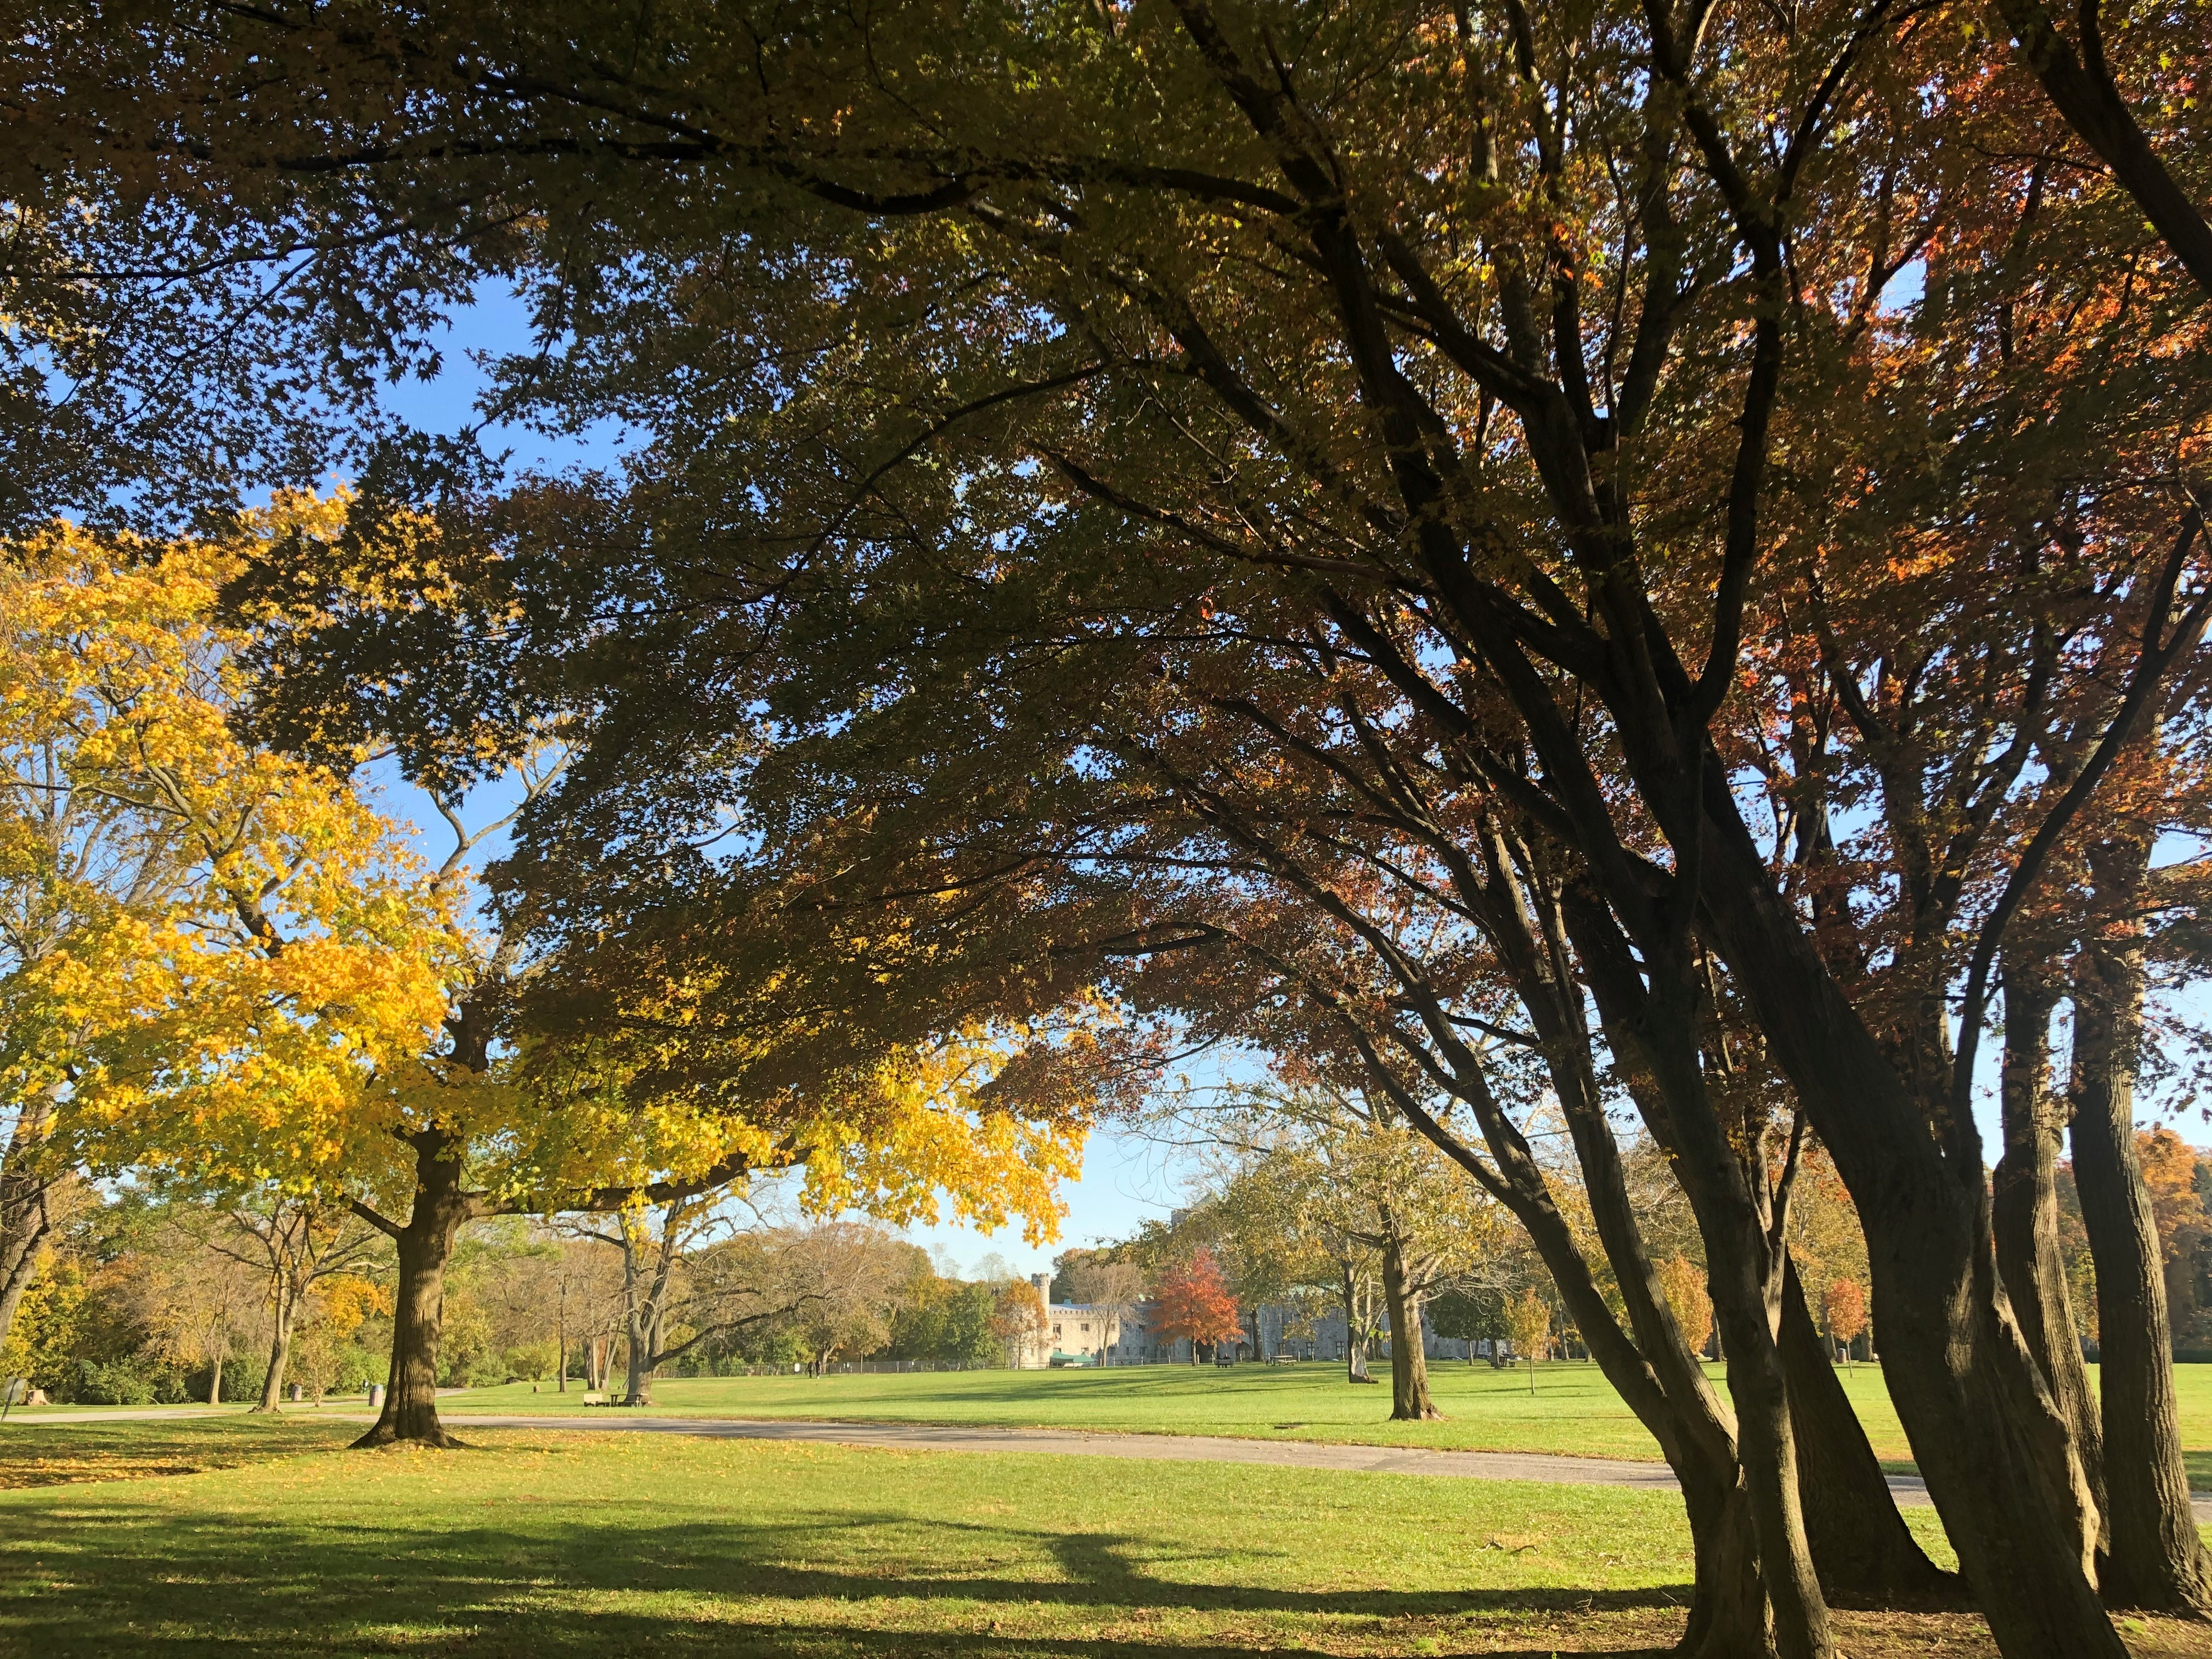 Fall colors on the Great Lawn including Castle Gould